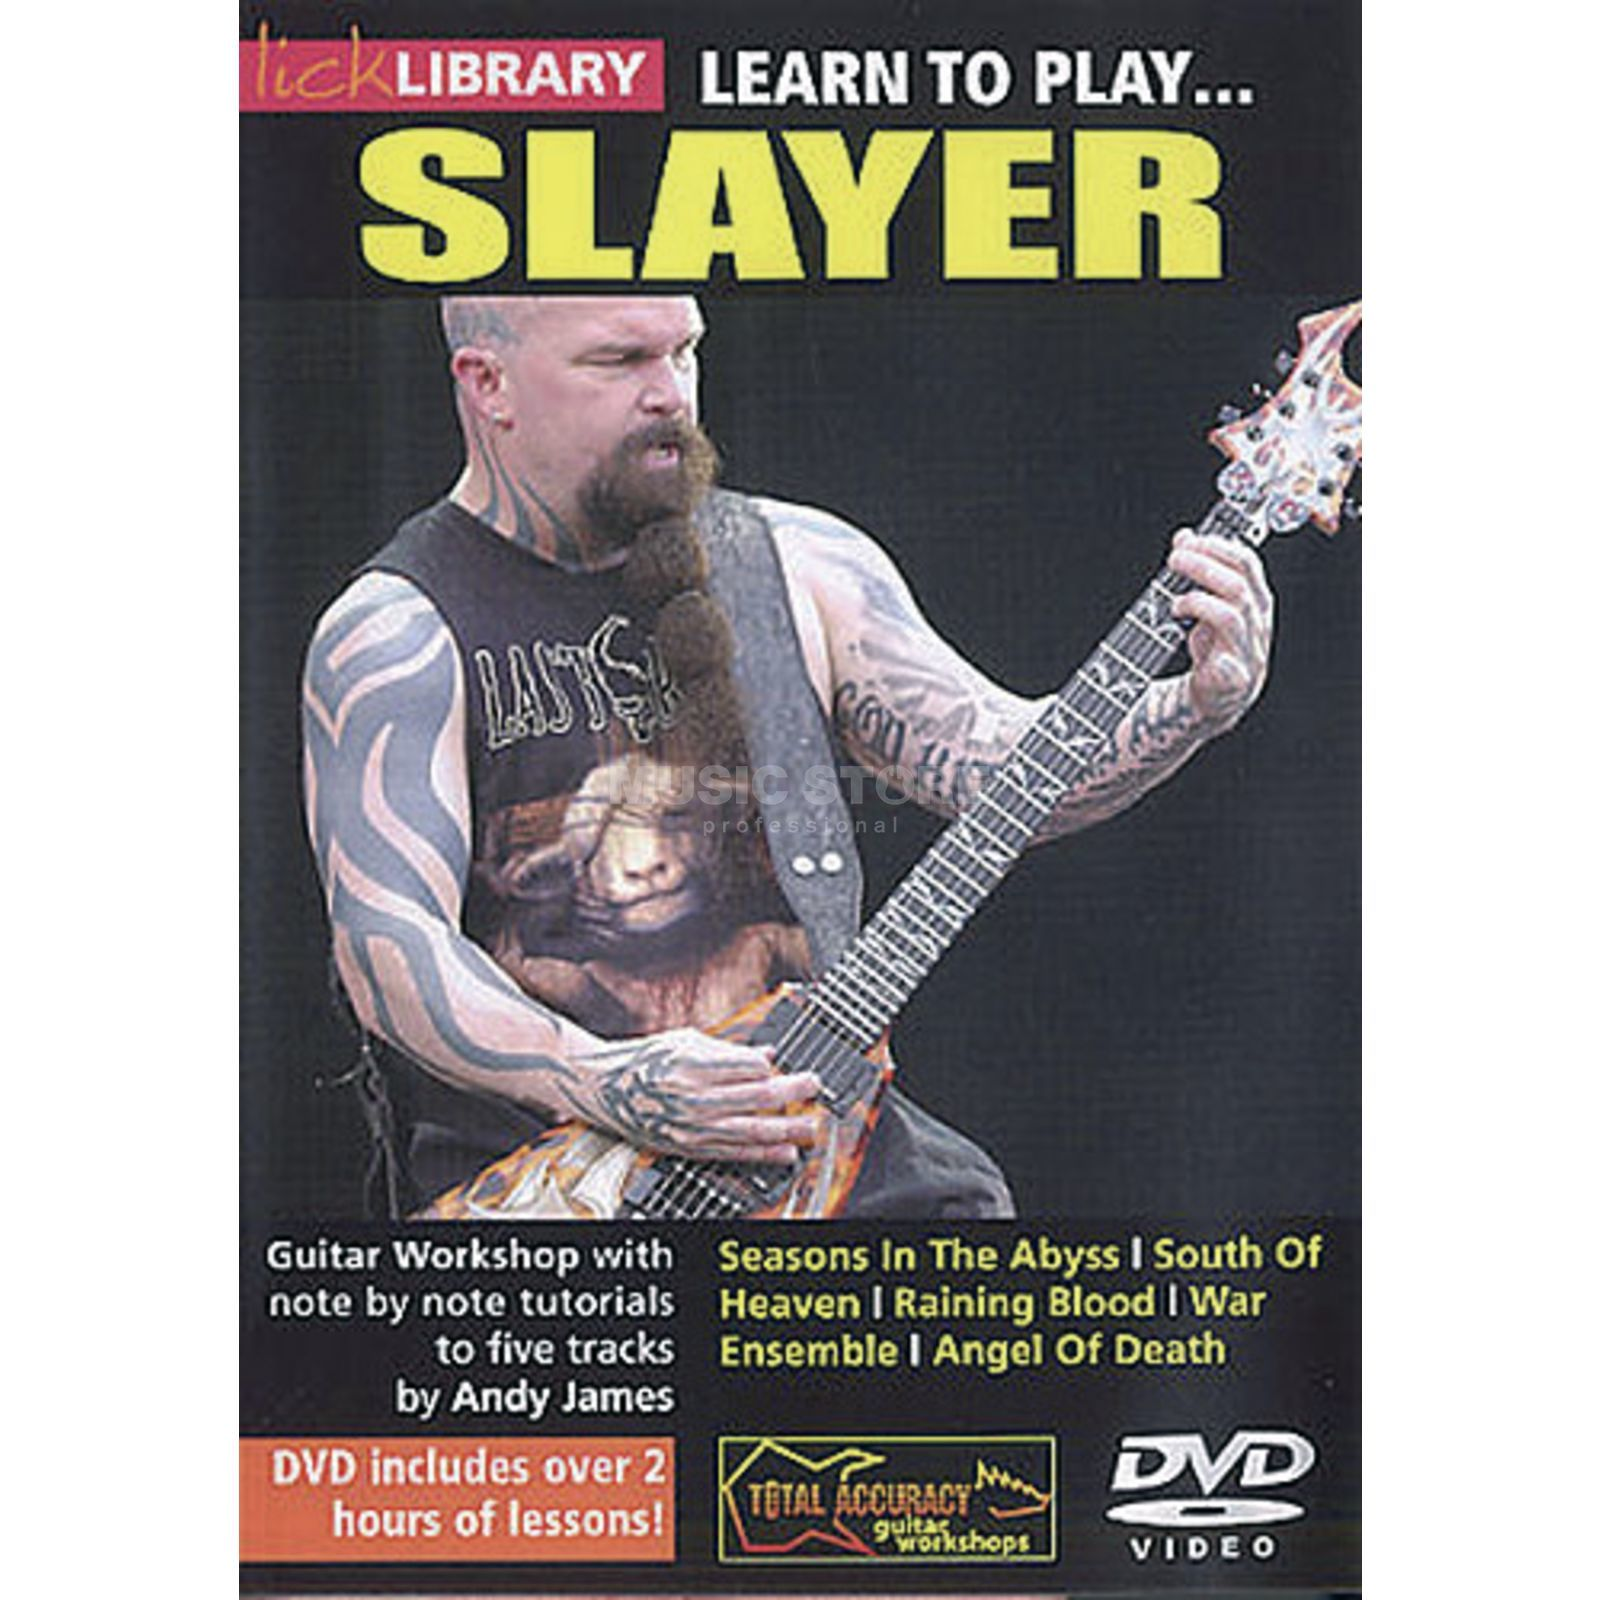 Roadrock International Lick Library: Learn To Play Slayer DVD Produktbild